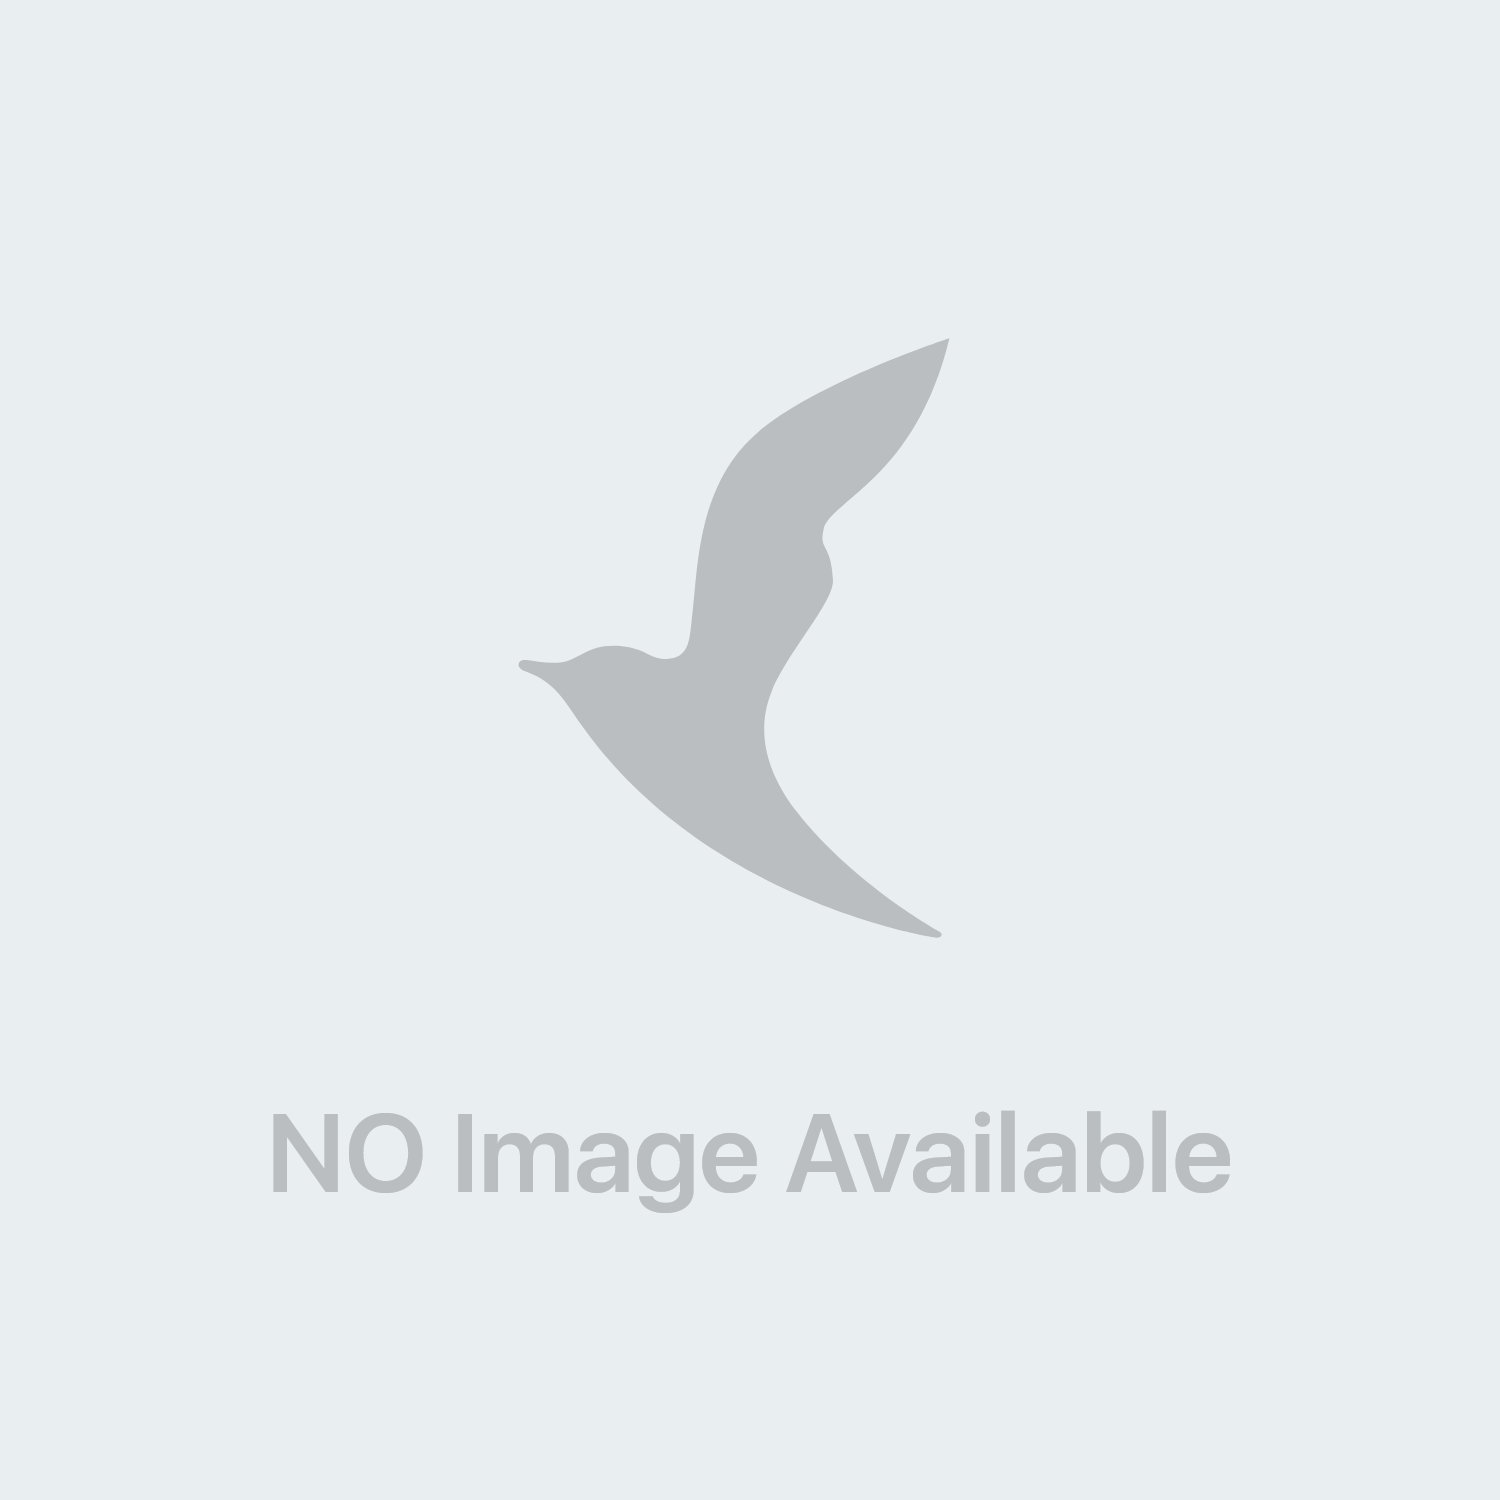 Aricodiltosse Gocce 25 ml